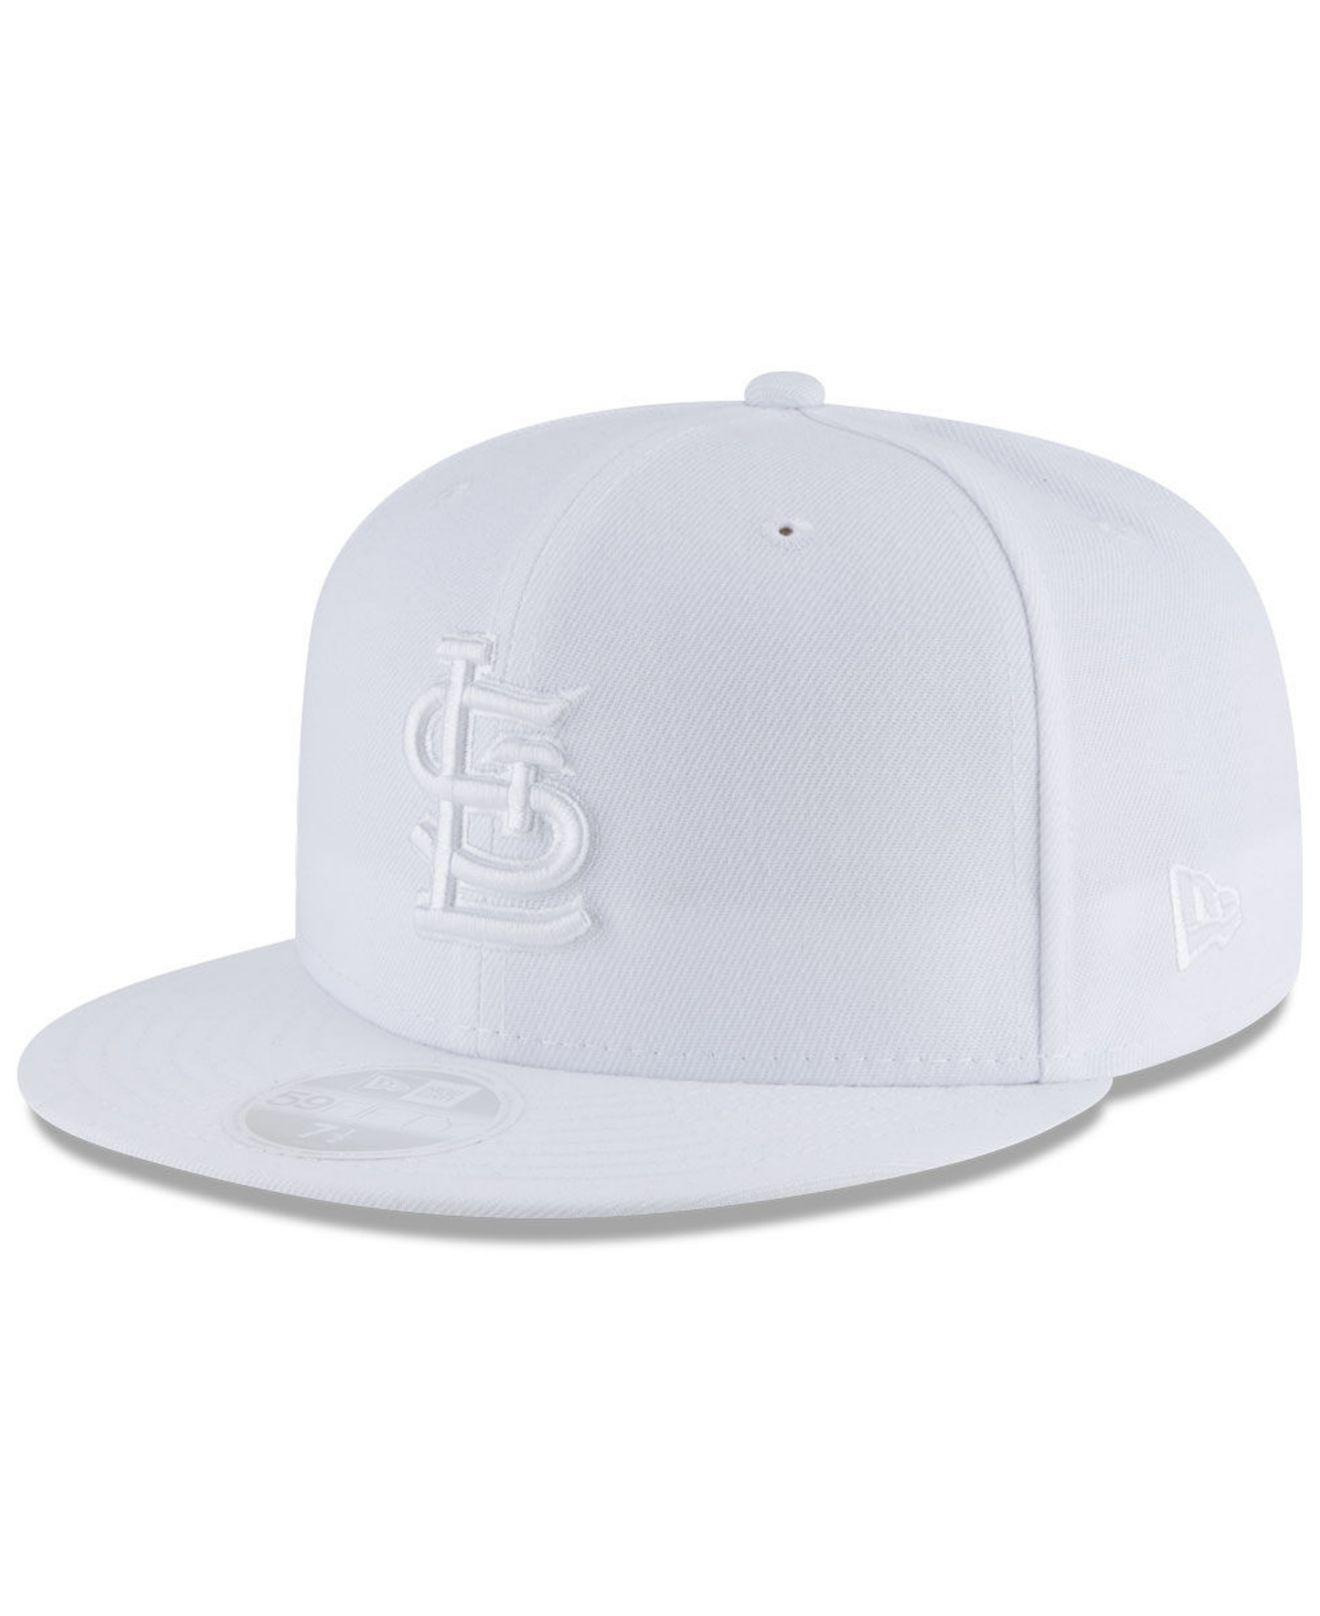 low priced f502d 6d0d2 KTZ - St. Louis Cardinals White Out 59fifty Fitted Cap for Men - Lyst. View  fullscreen